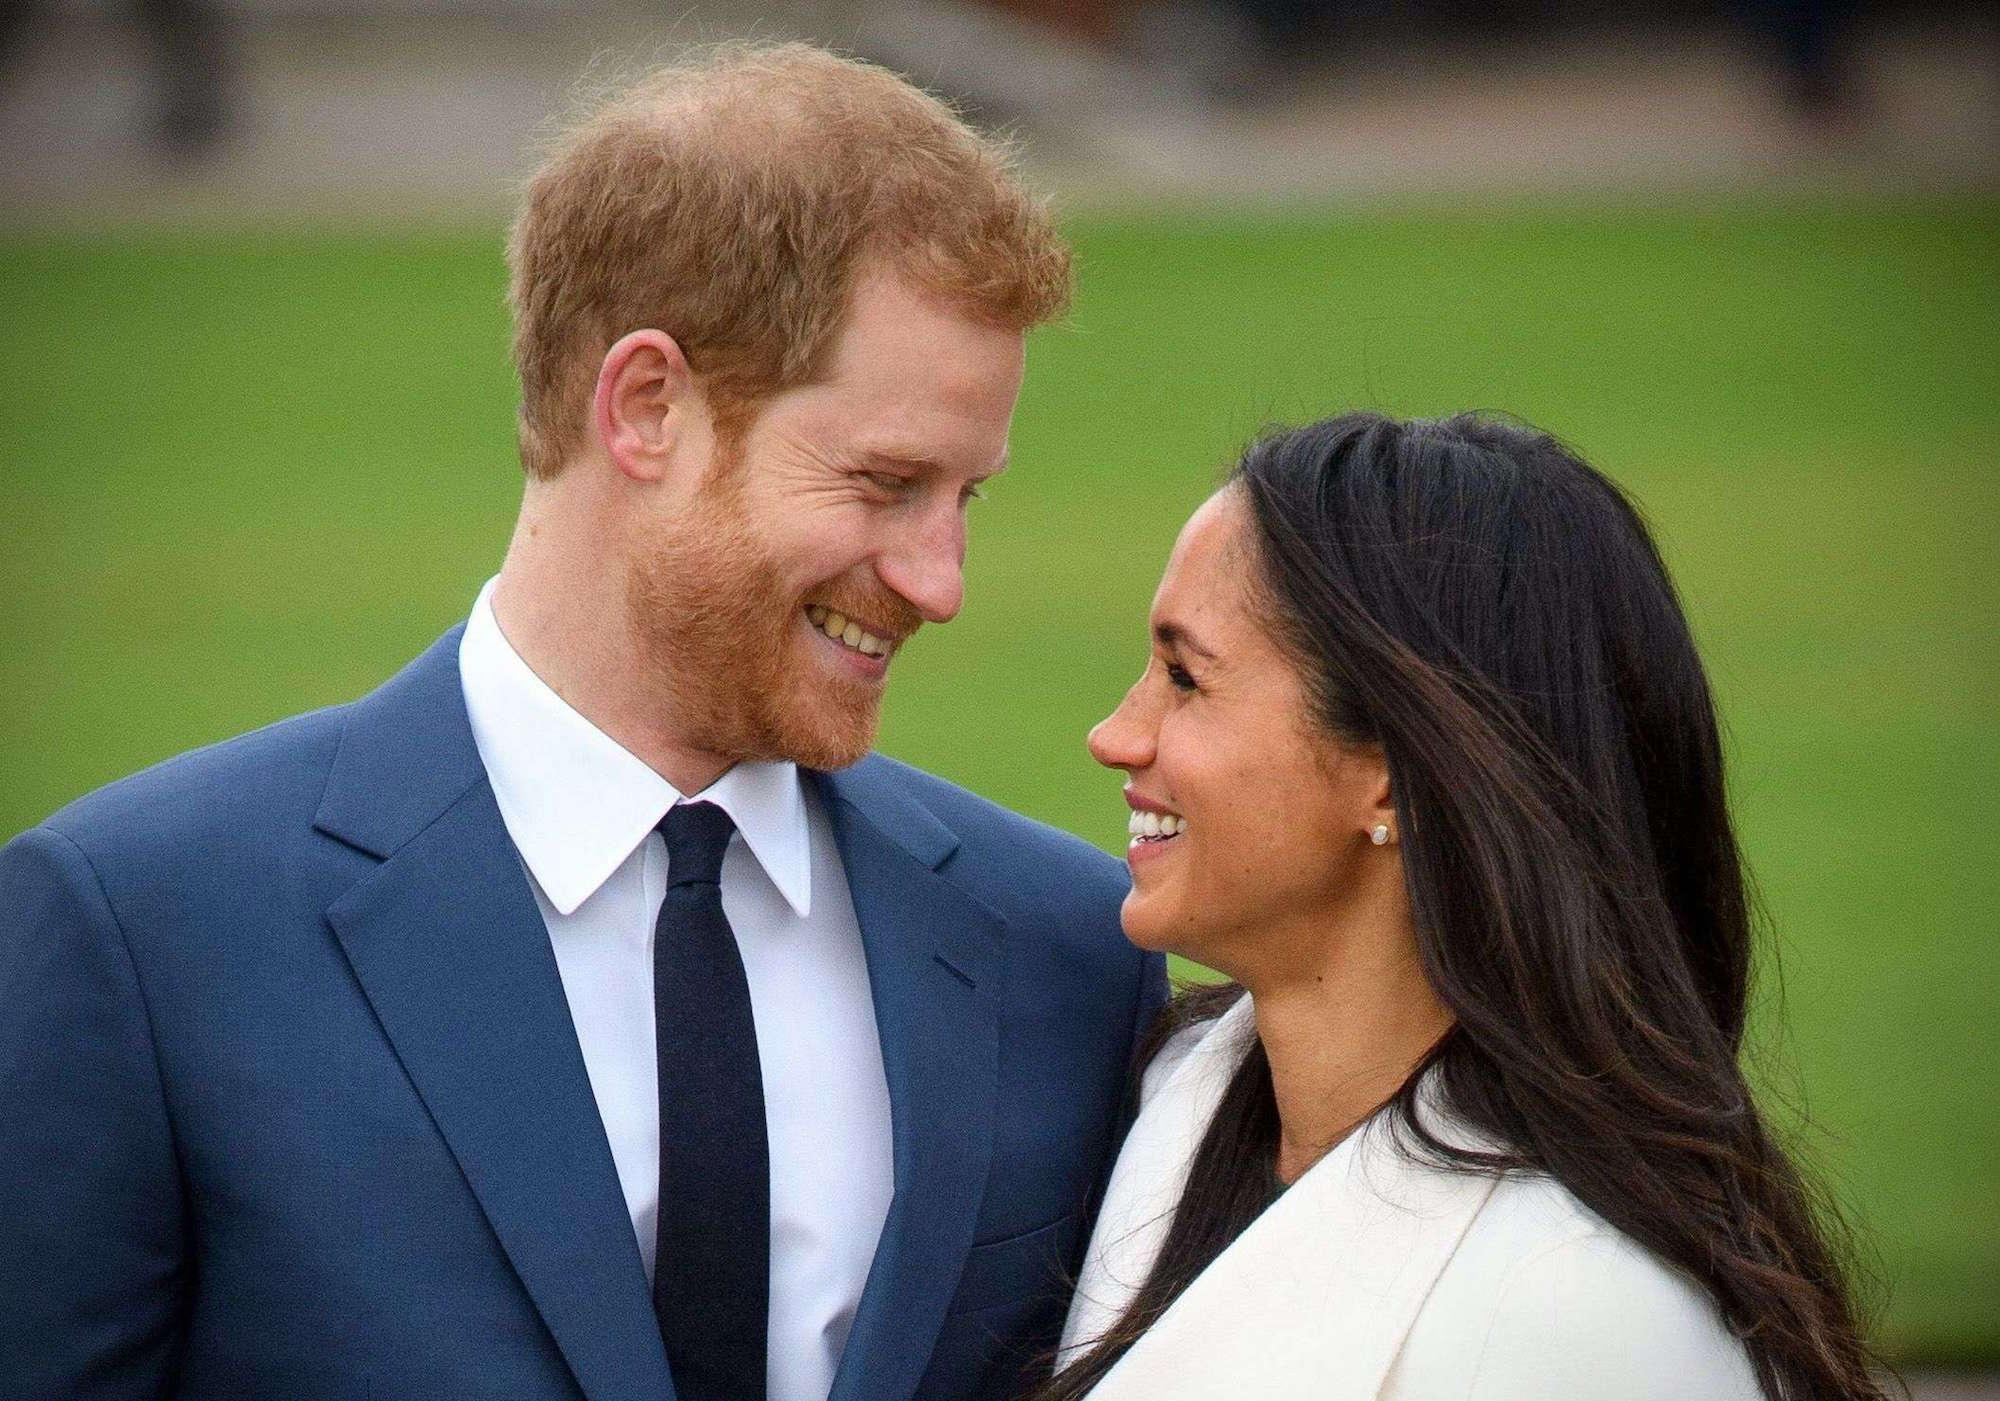 markle lesbian dating site Prince harry meghan markle engaged, dating a royal life health • prince harry • sex 17 lesbian slang terms every baby gay needs to learn queer voices.